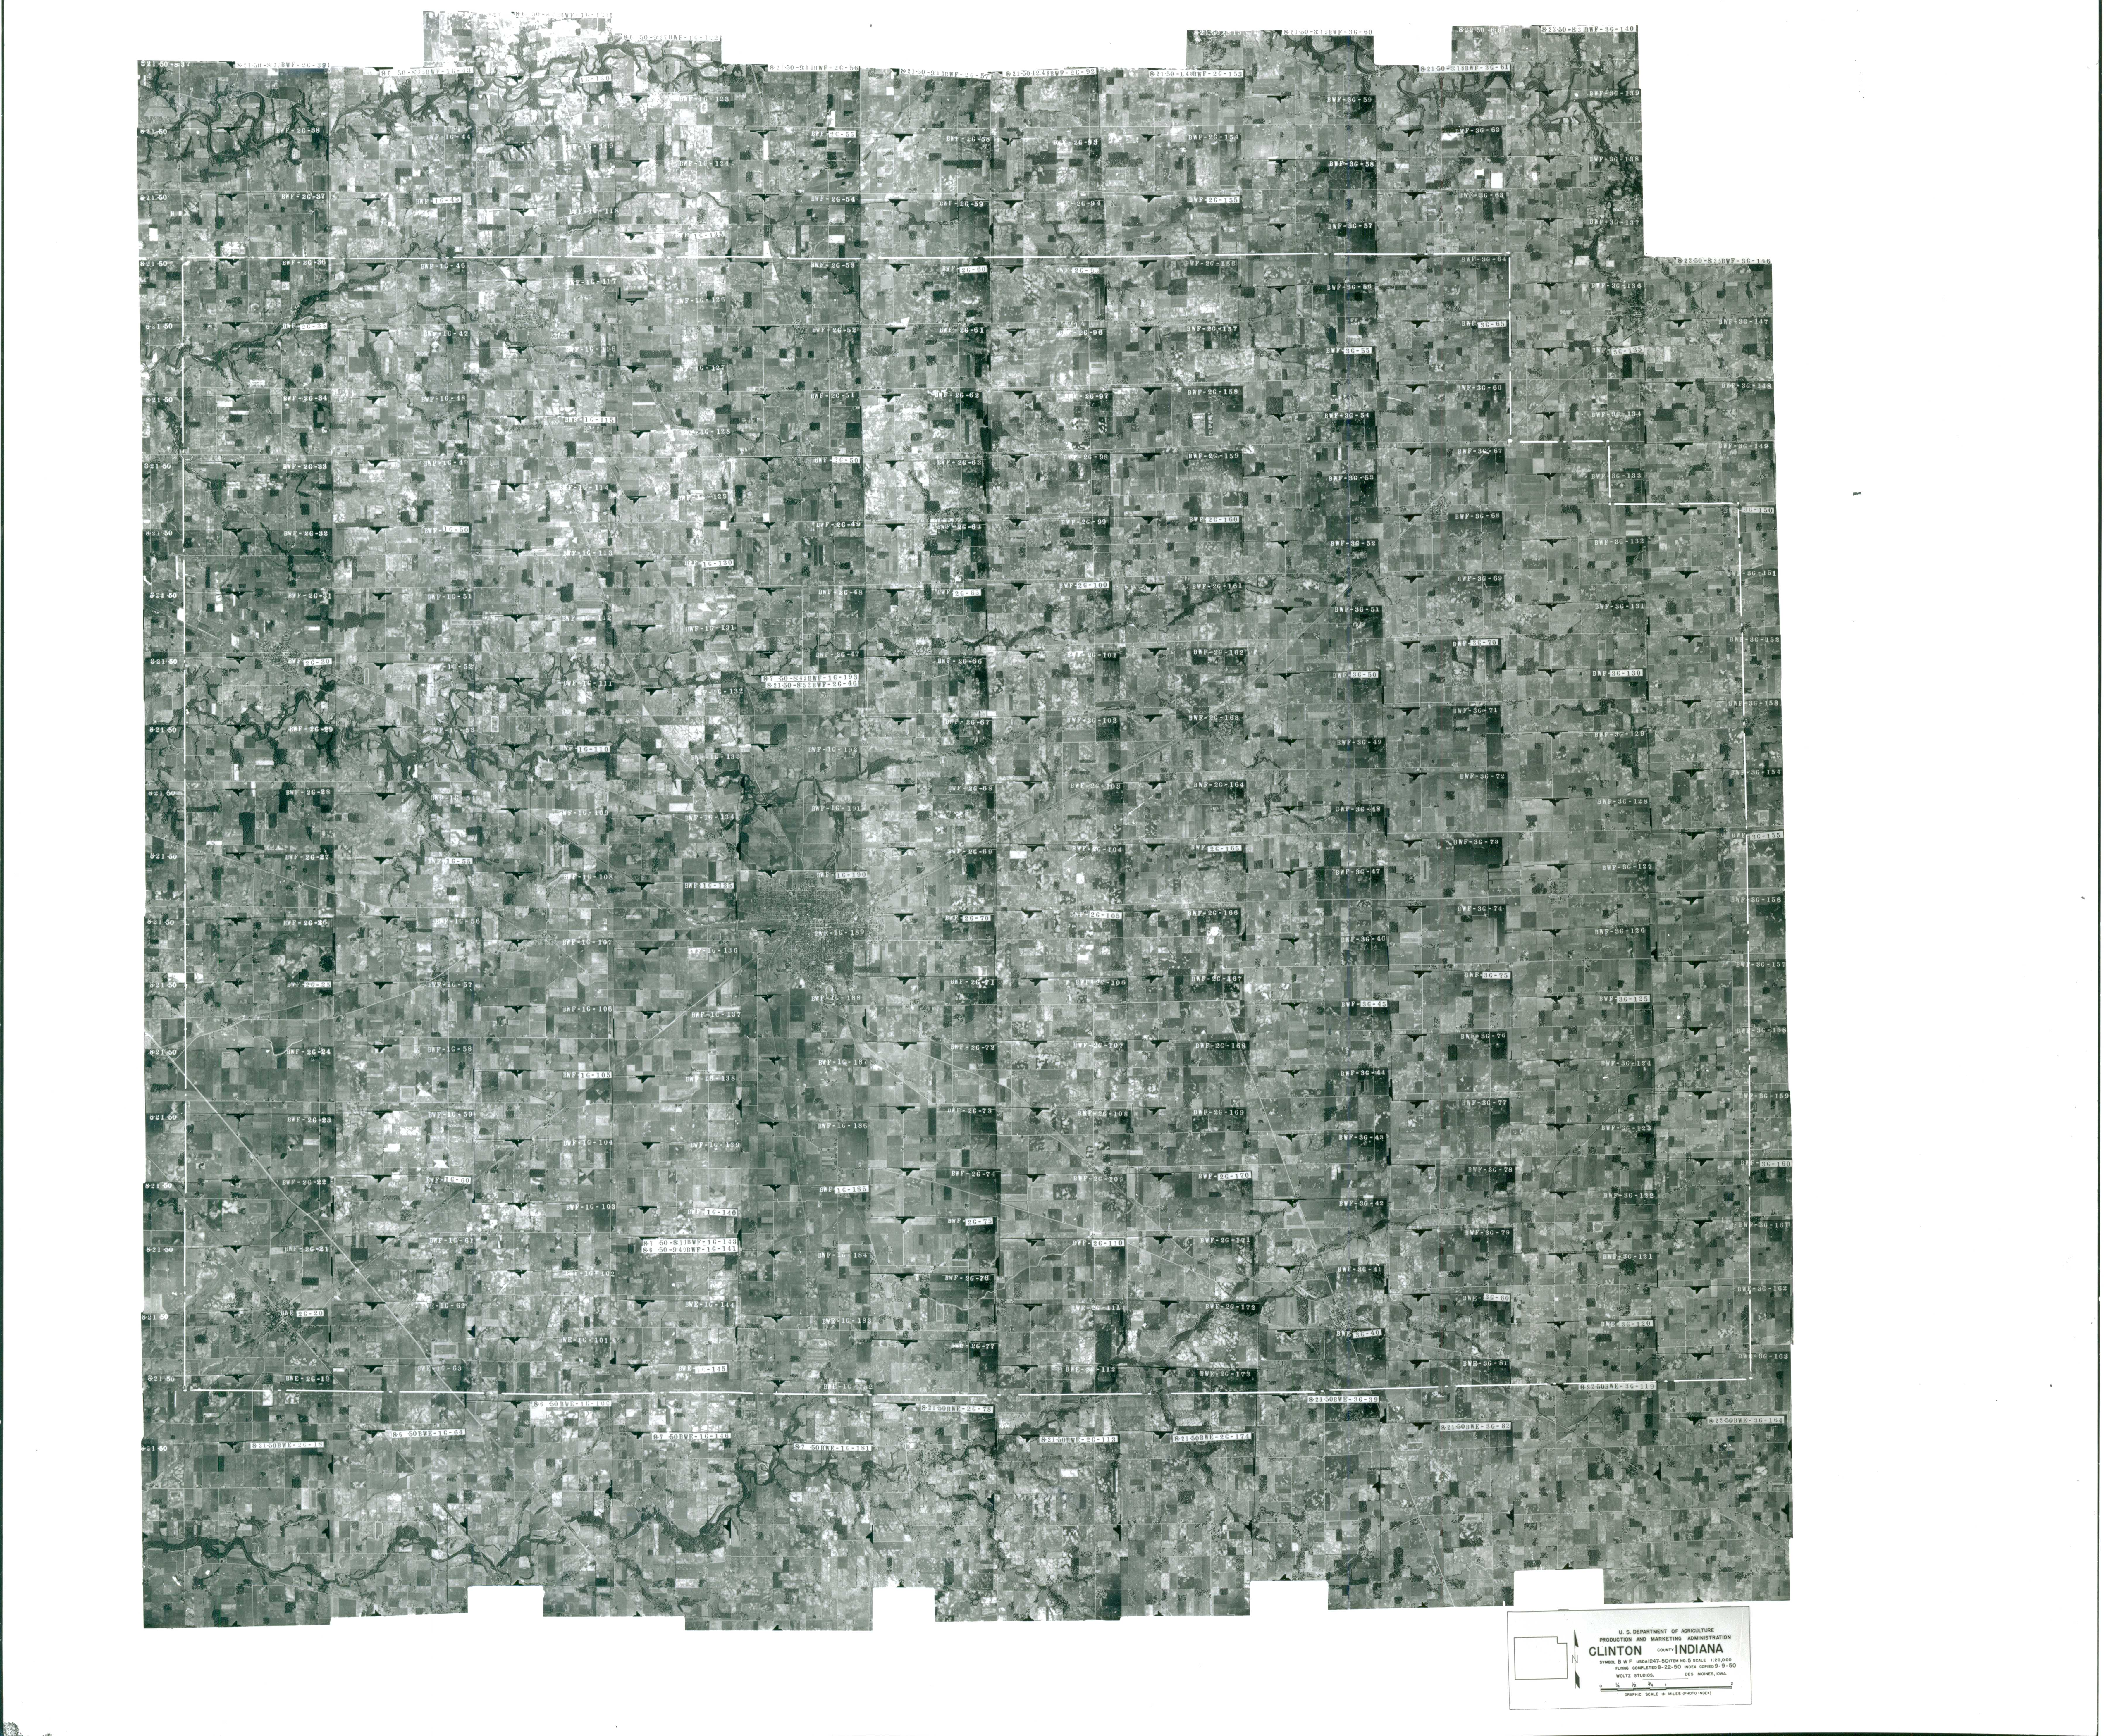 Index to Aerial Photography of Clinton County, Indiana 1